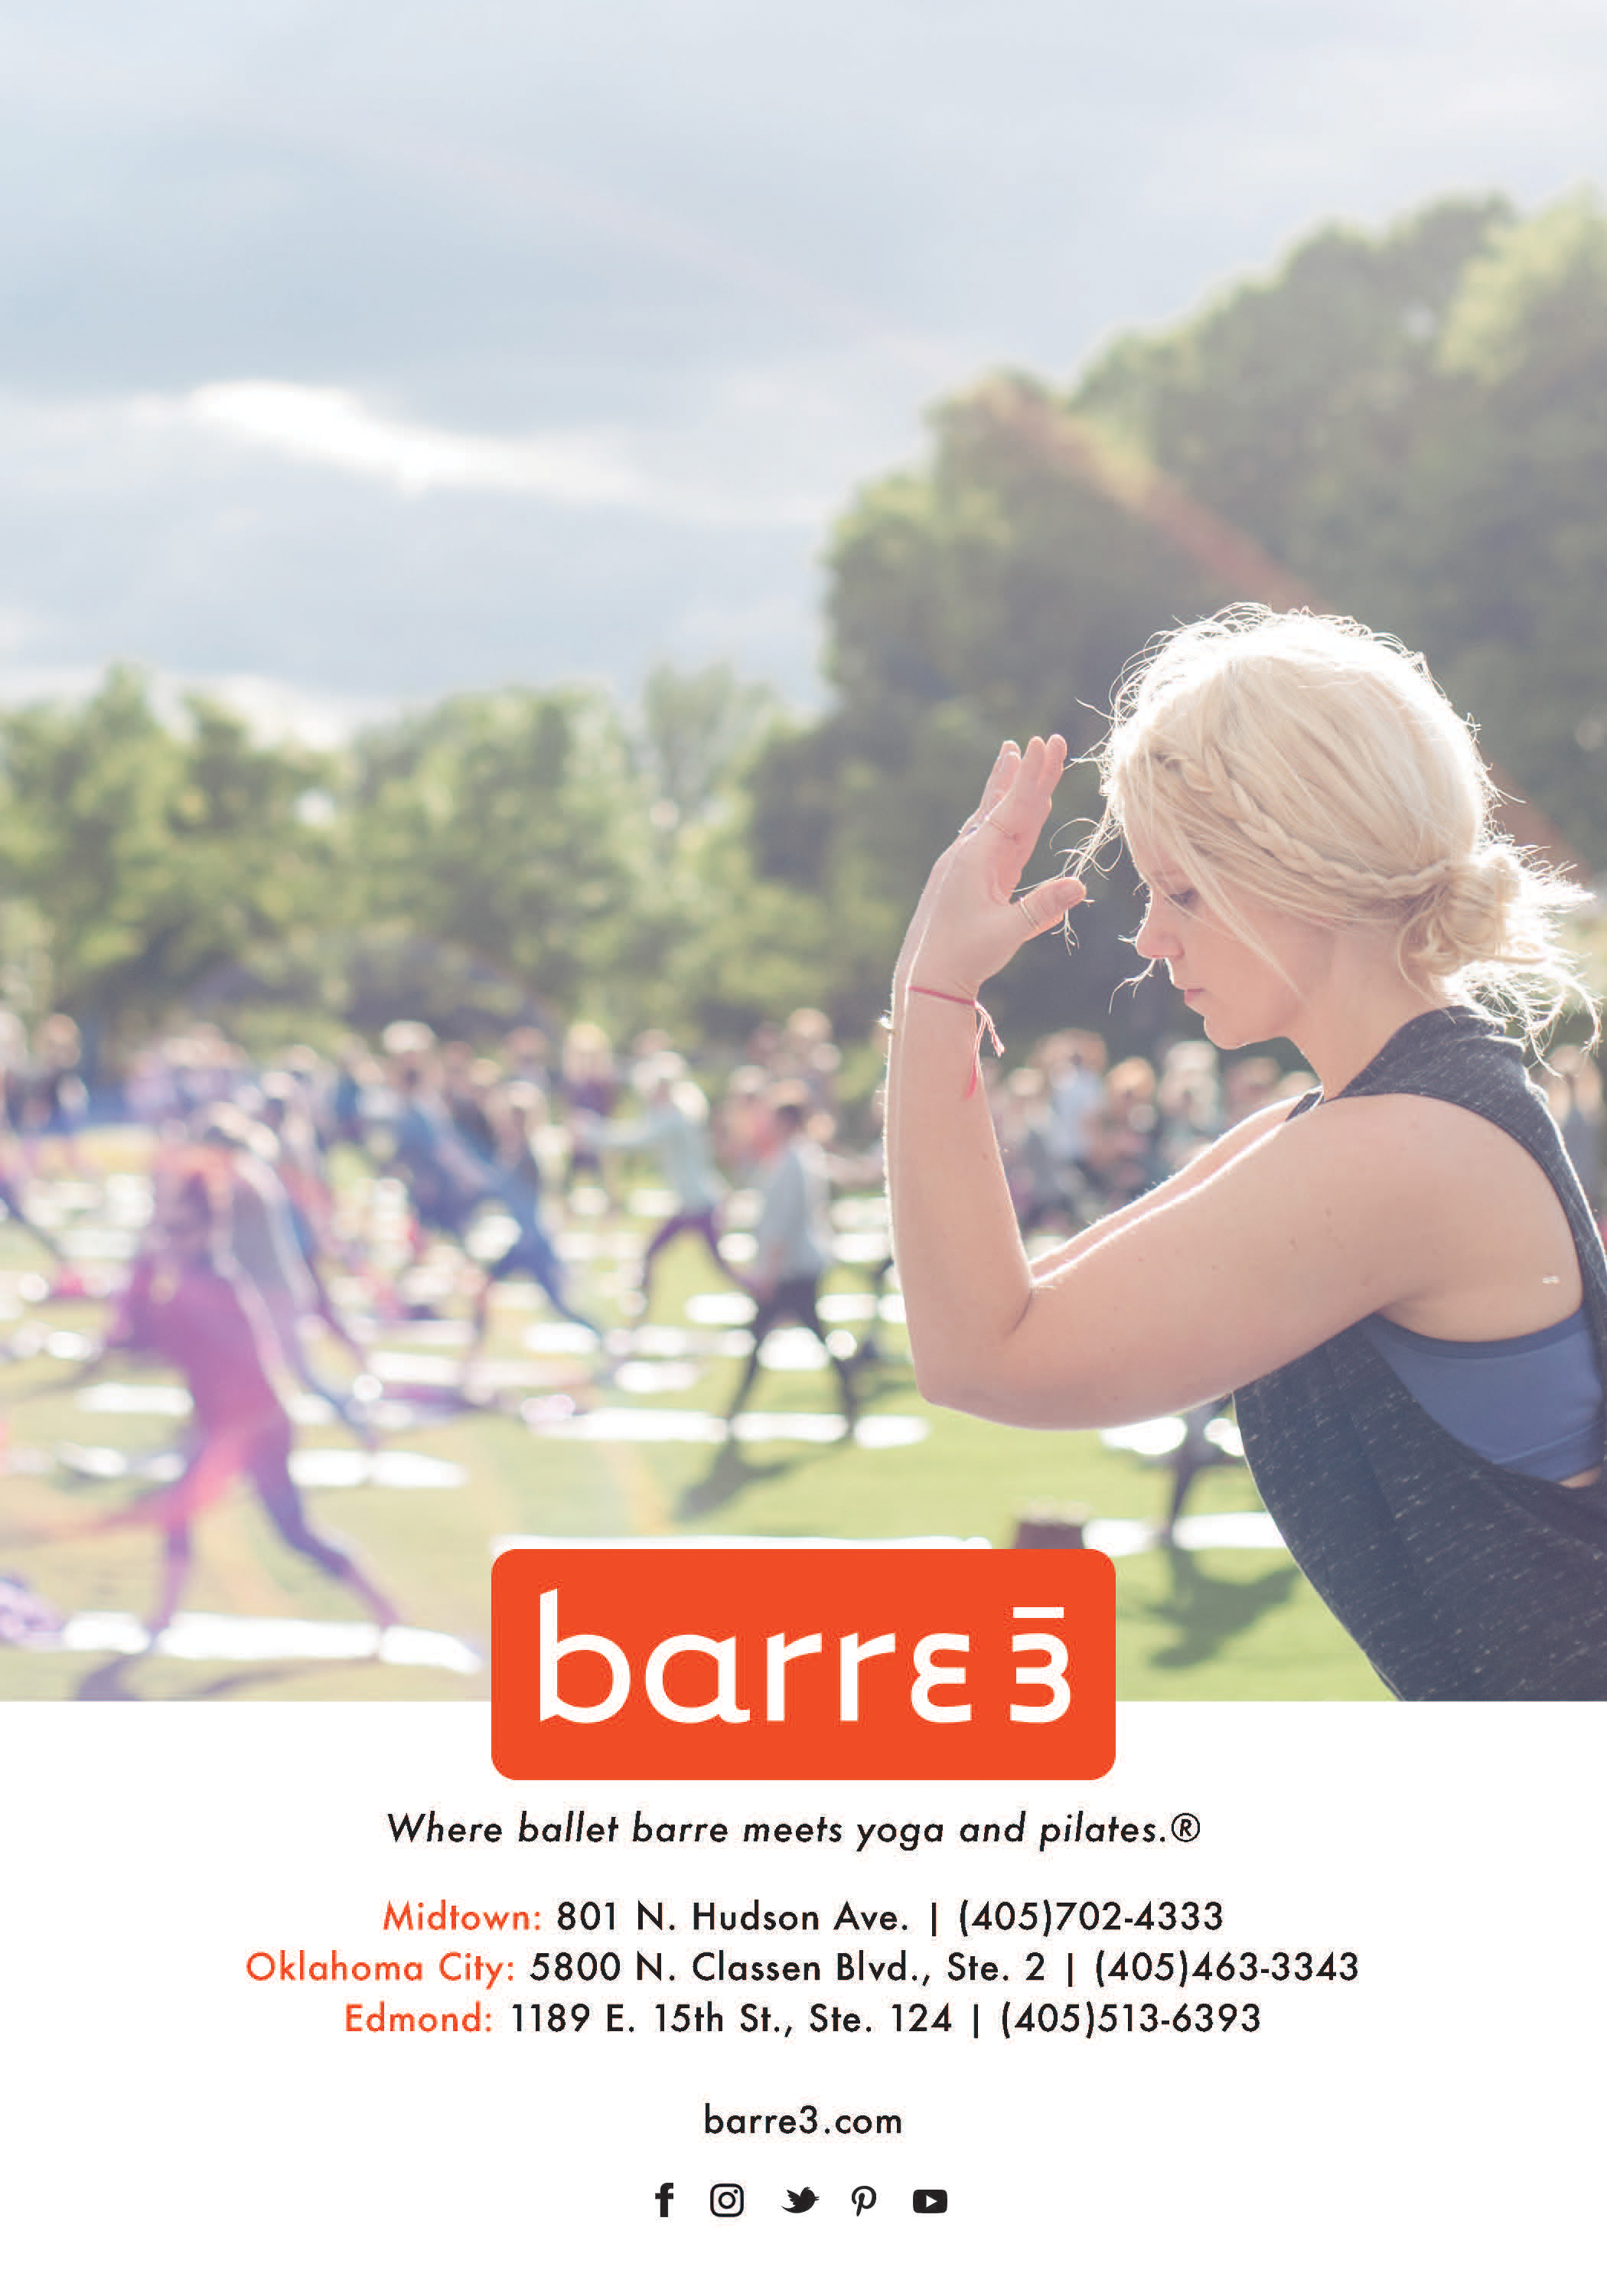 TOKC-Issue7-barre.jpg